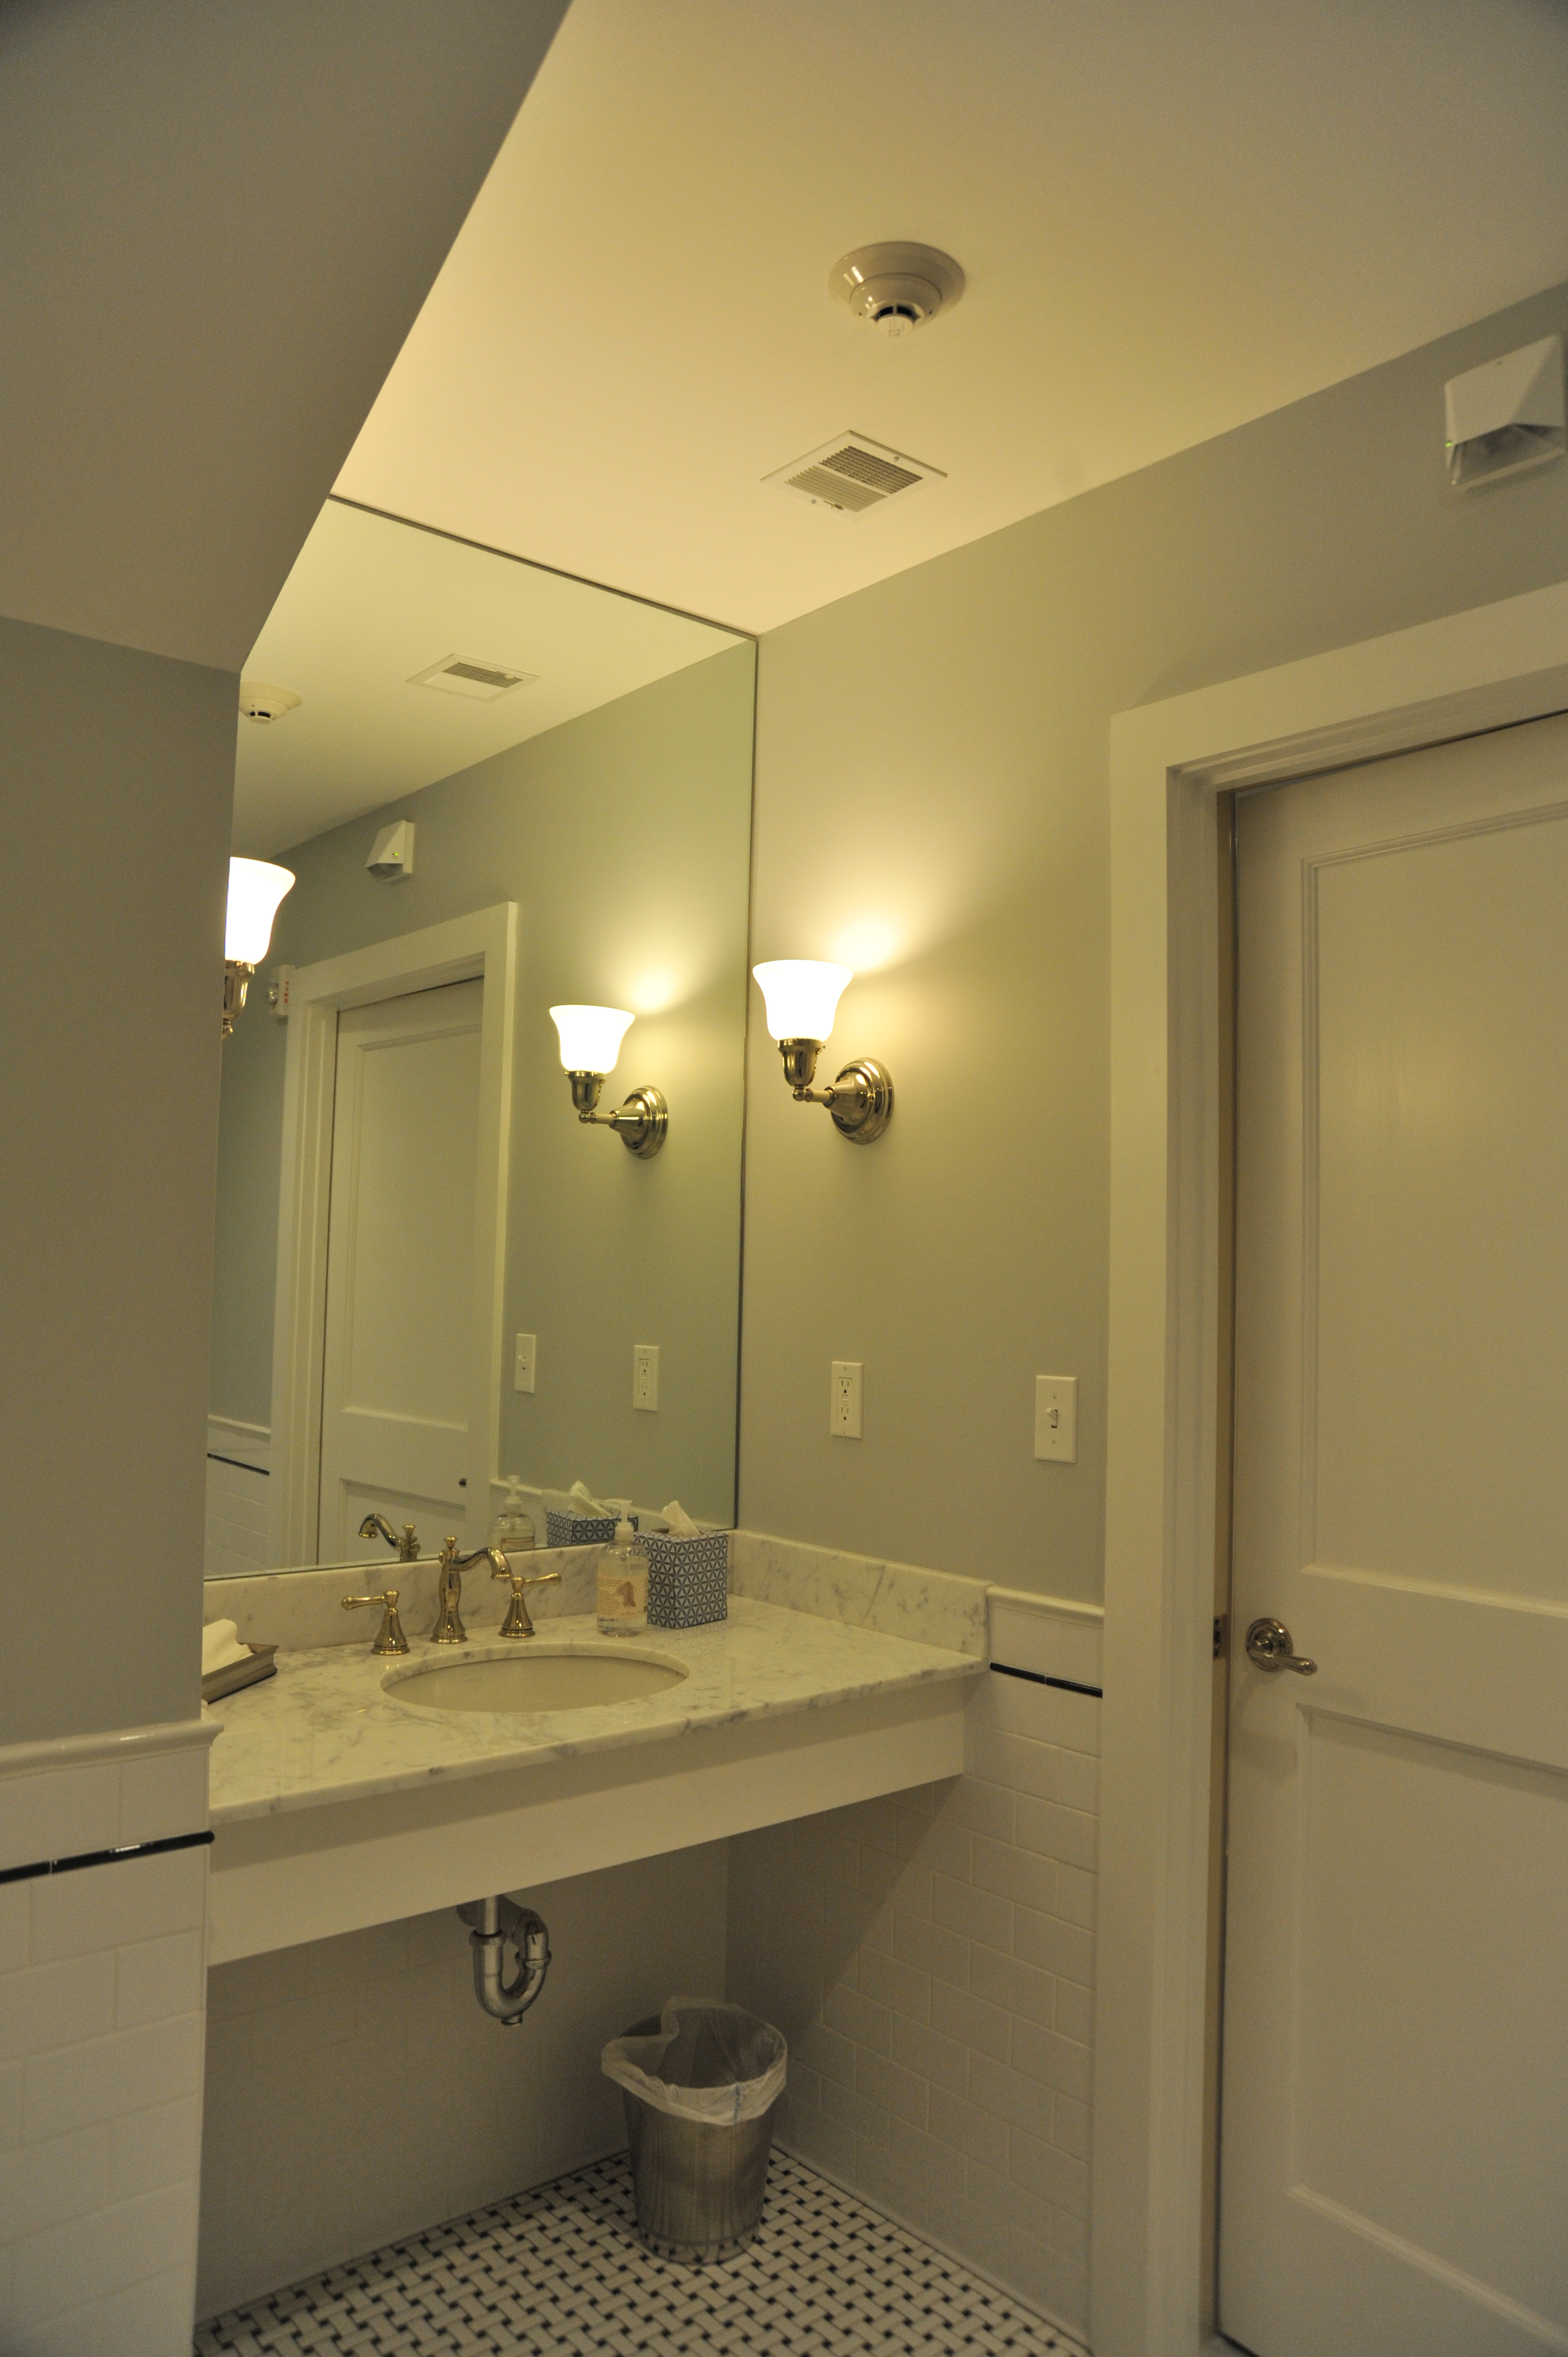 Newly created restrooms